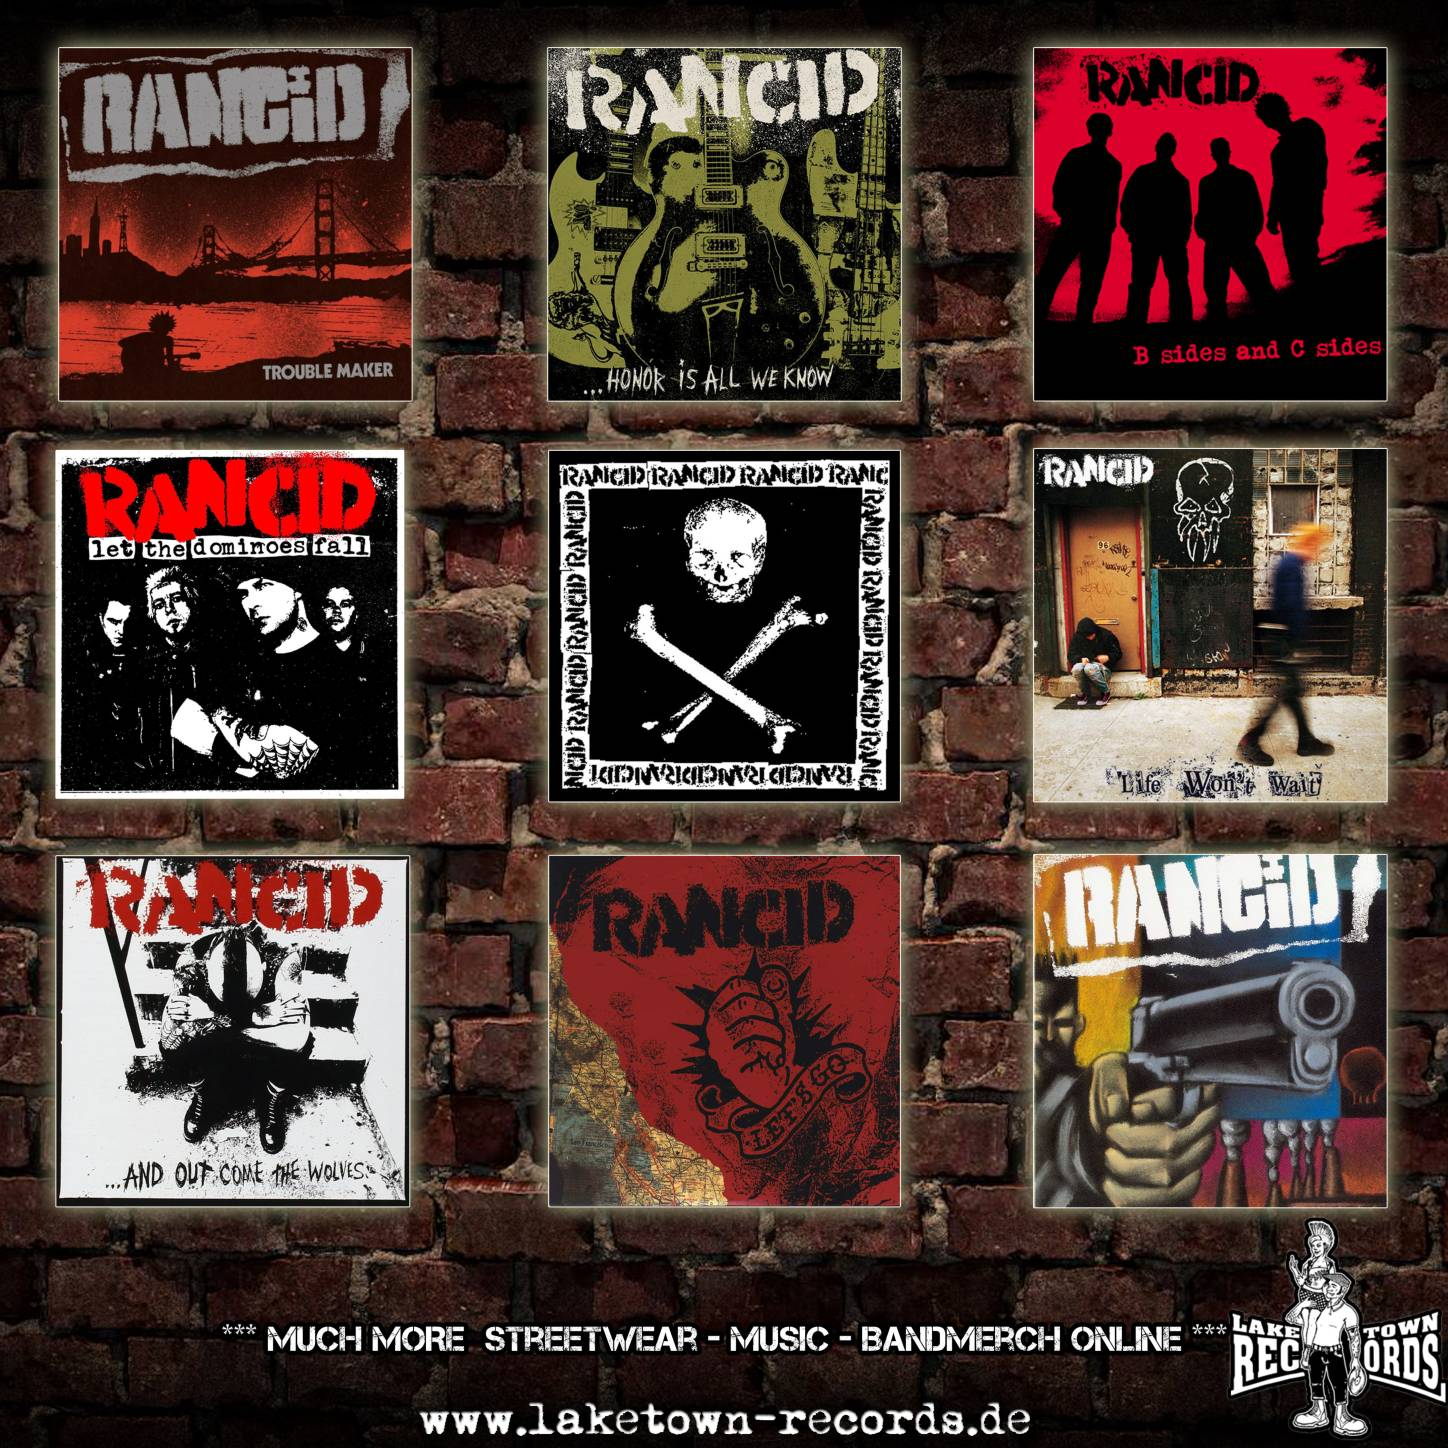 Rancid records